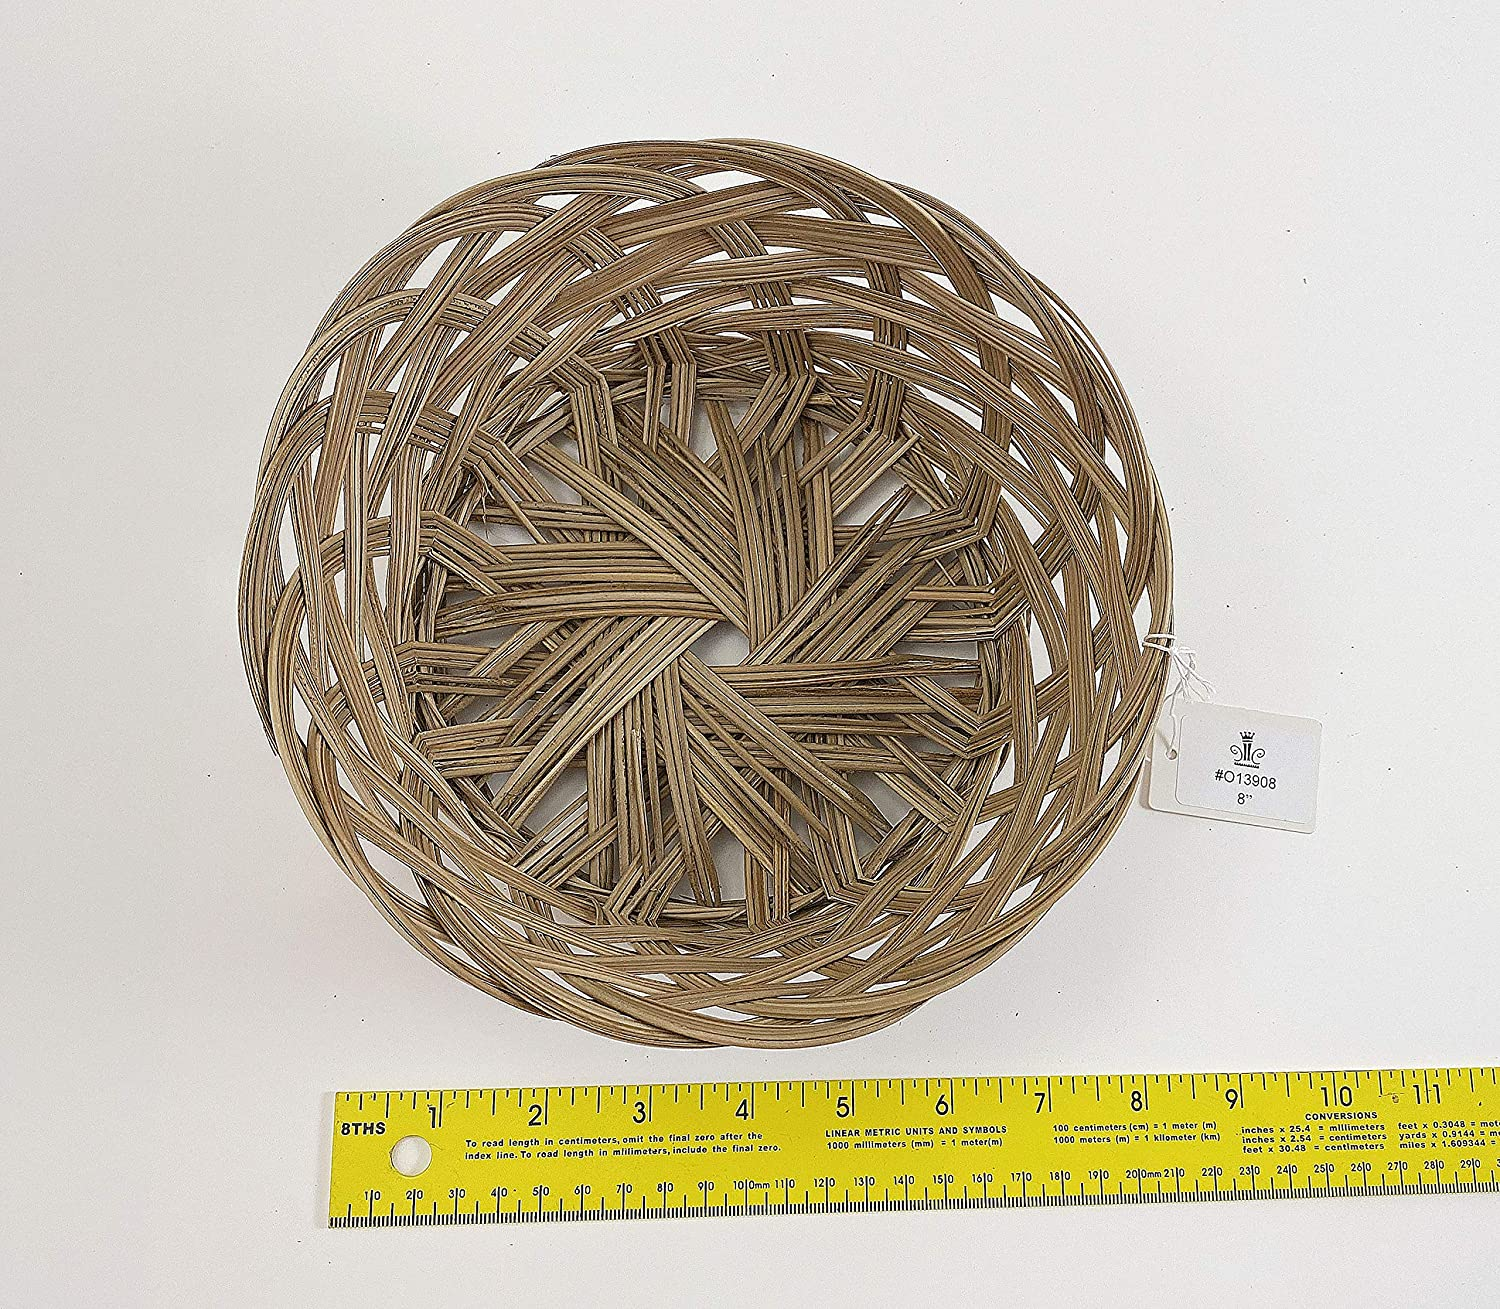 CalCastle Round Gift Baskets, Woven Bread Roll Baskets, Food Serving Baskets, Natural Coco Midrib Material (8